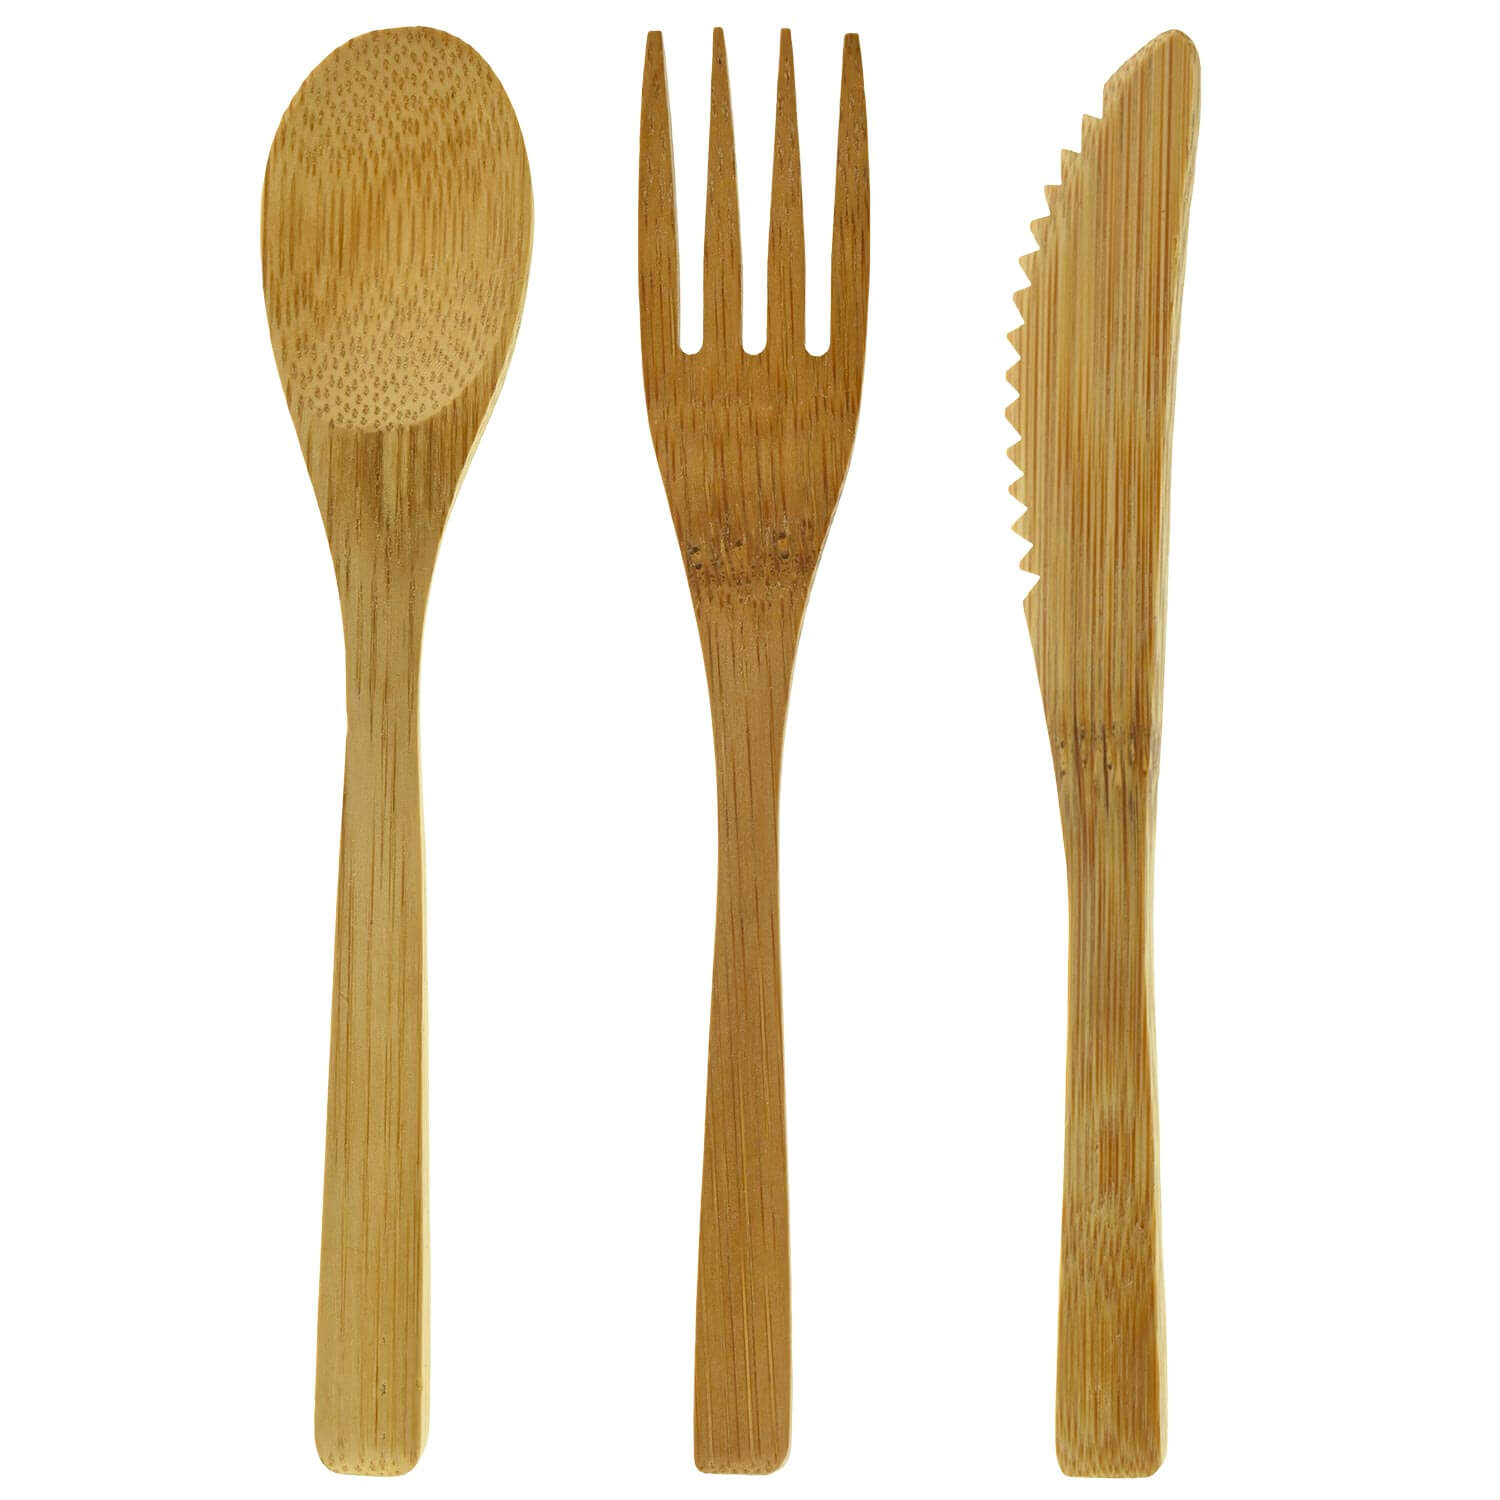 Bamboo Utenstil Kit